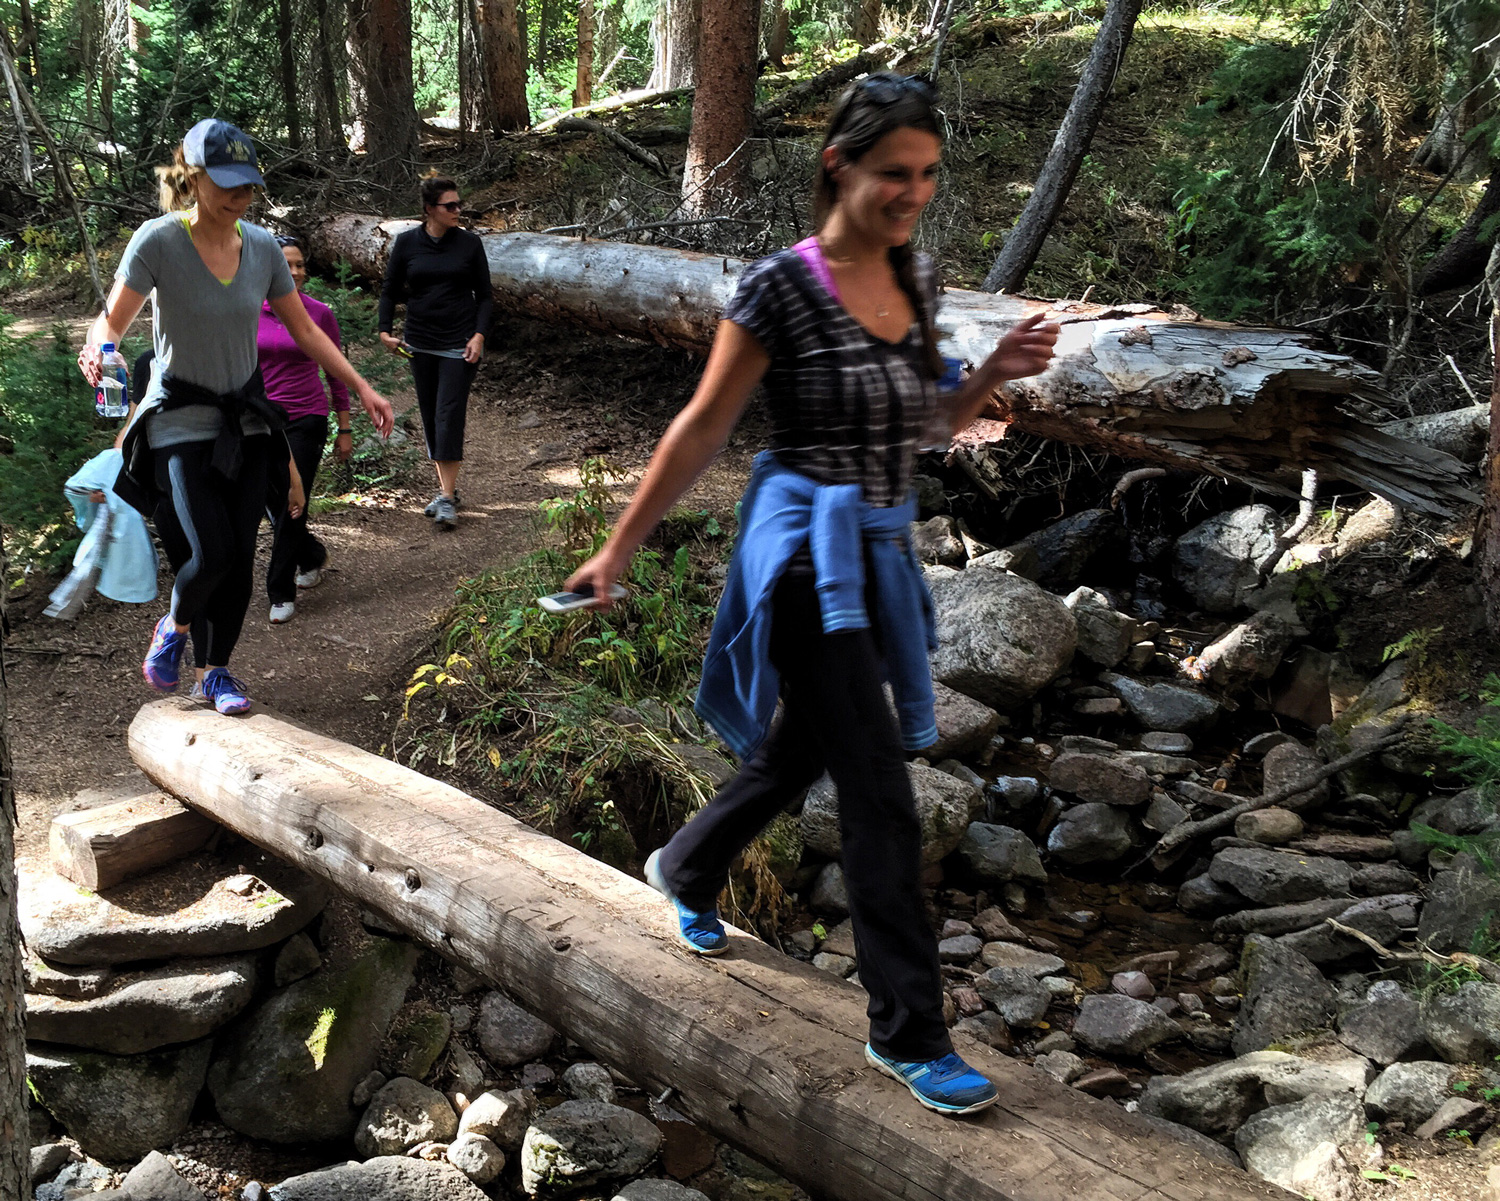 The group navigates a log bridge along the Piney Lake Trail